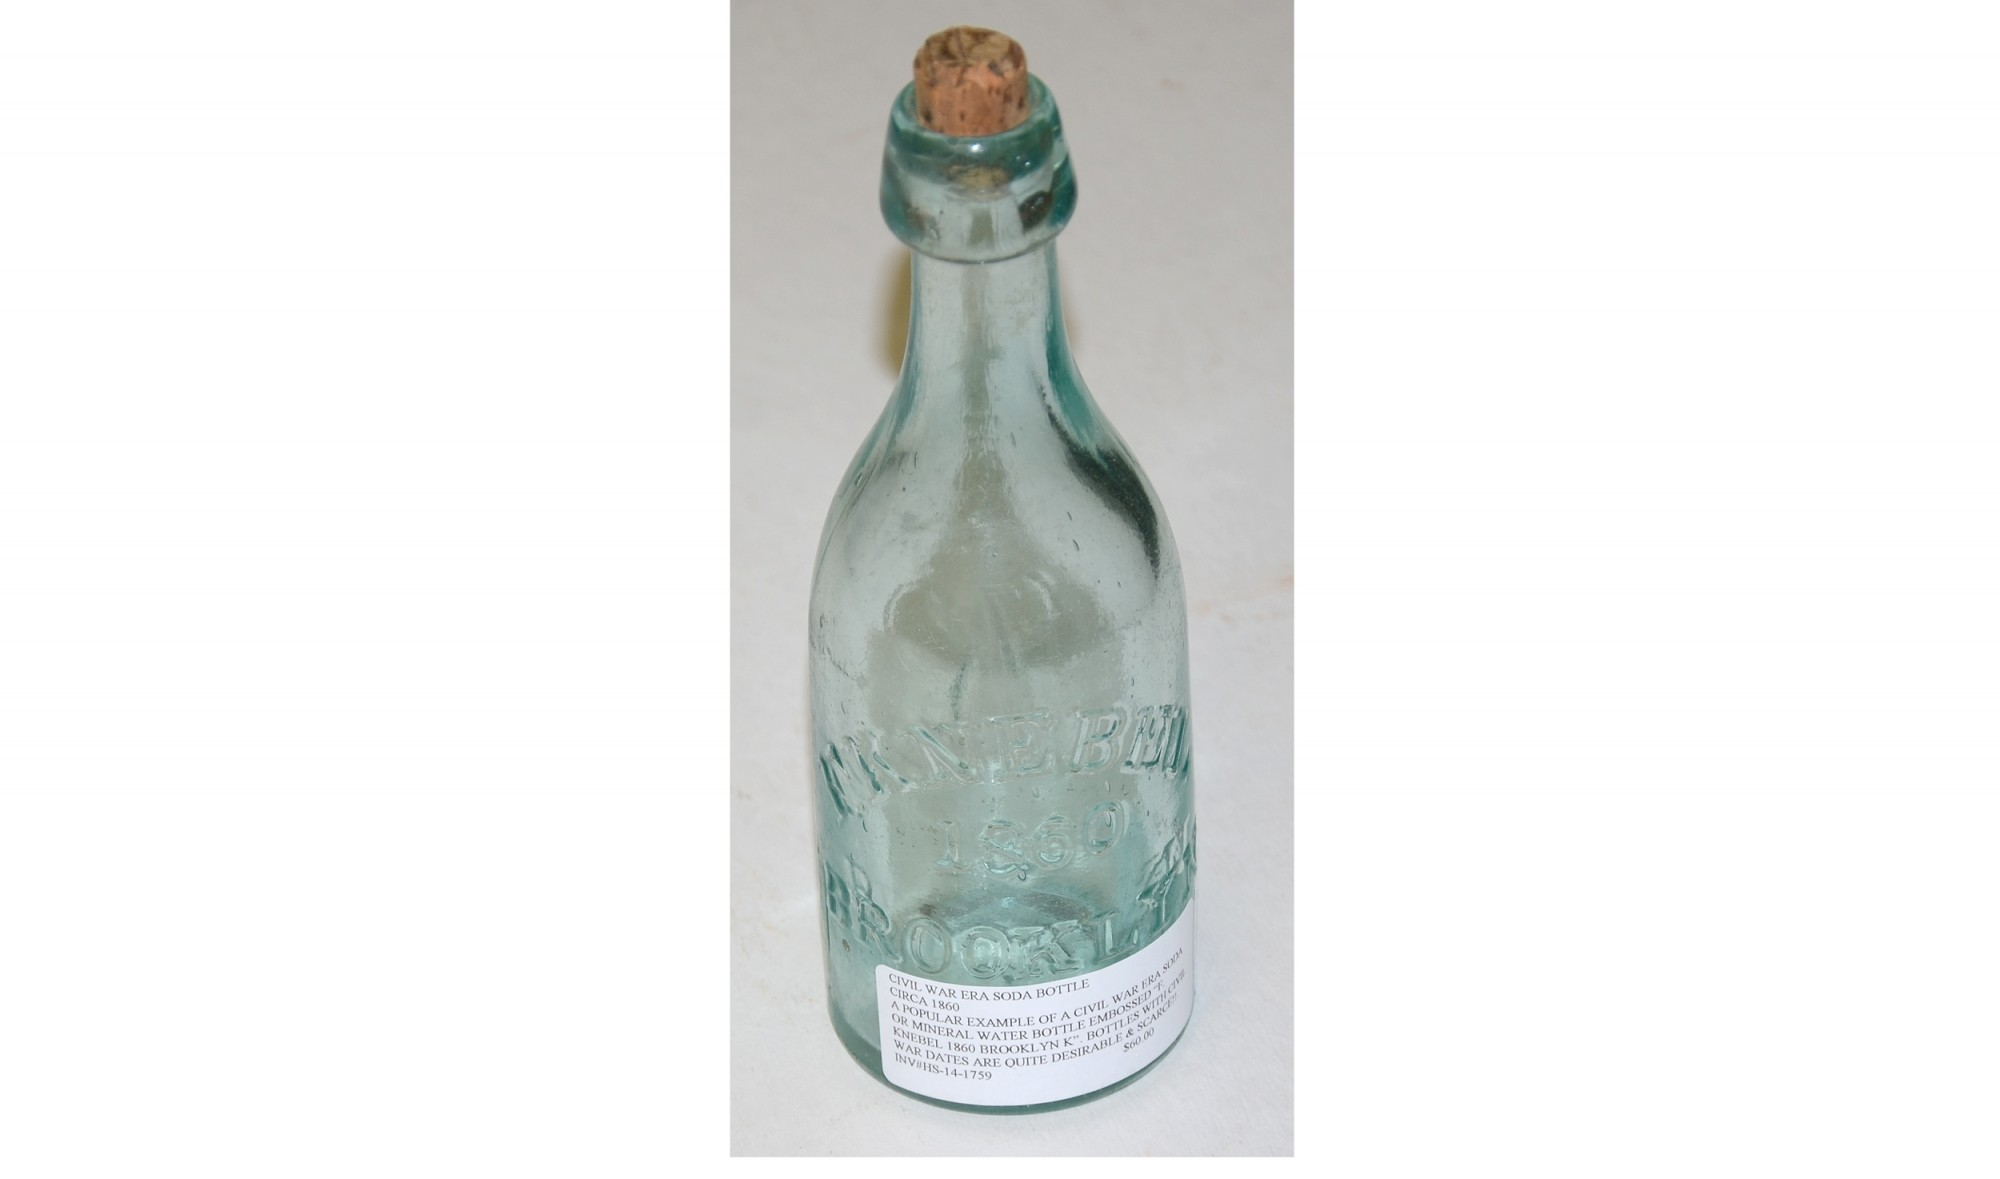 CIVIL WAR ERA SODA BOTTLE, CIRCA 1860